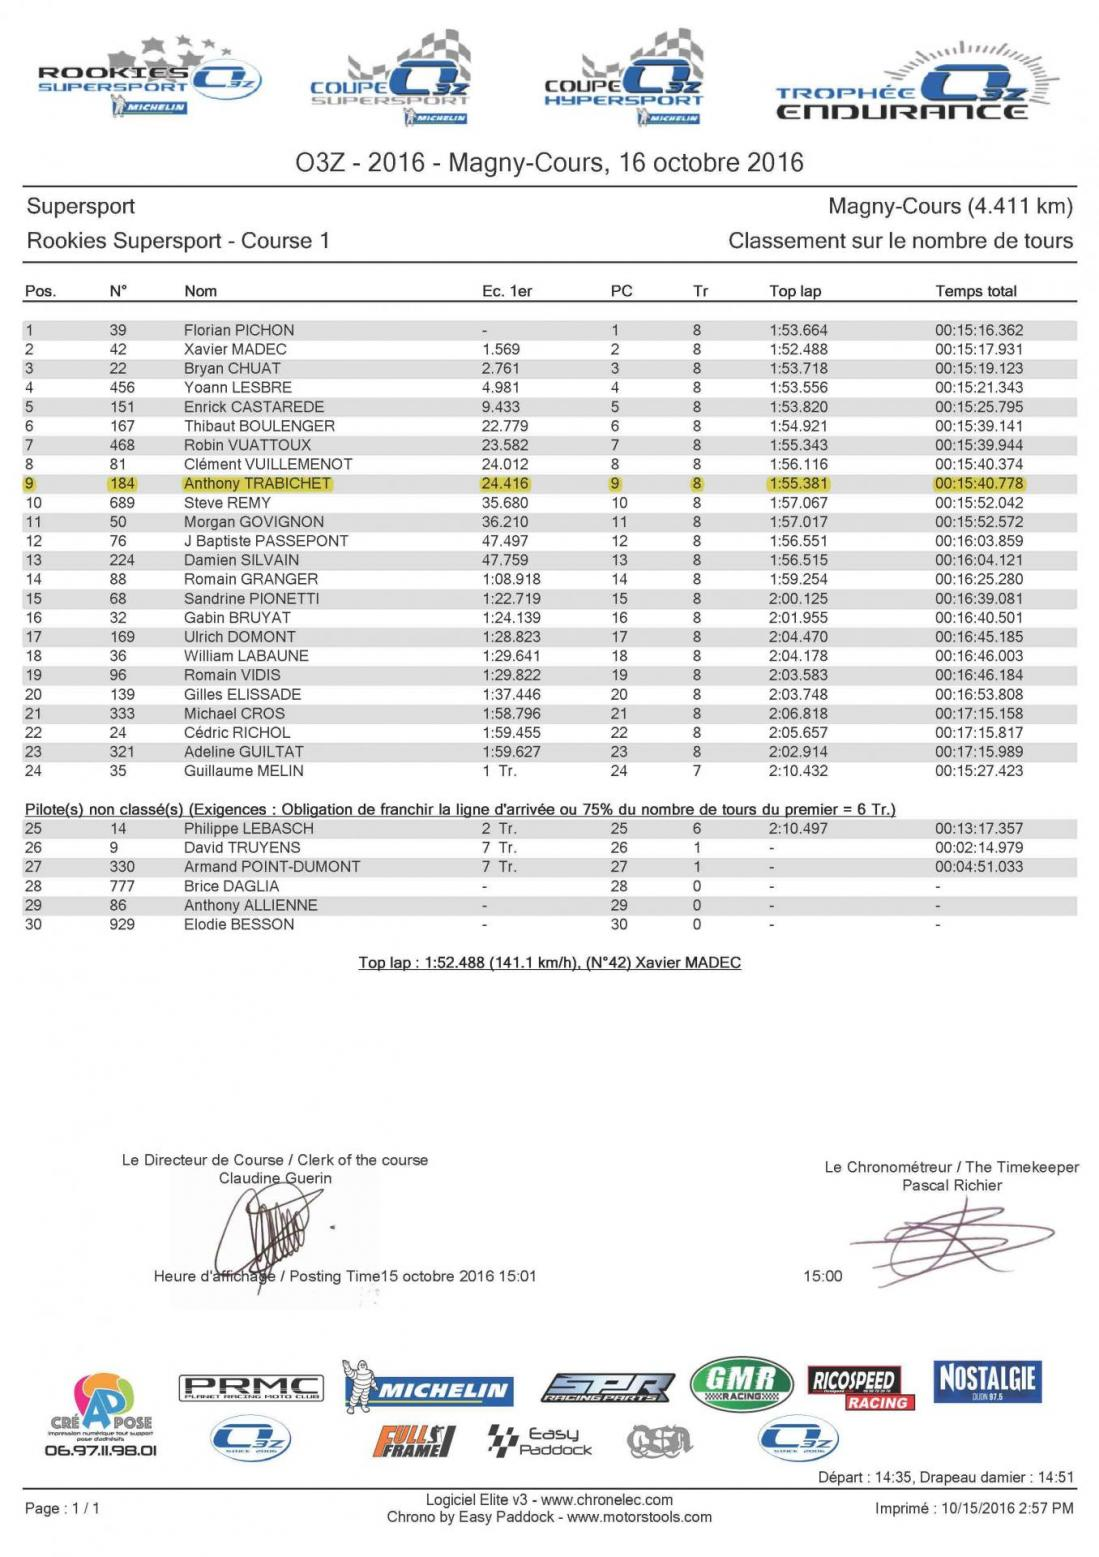 Magny supersport rookies supersport course 1